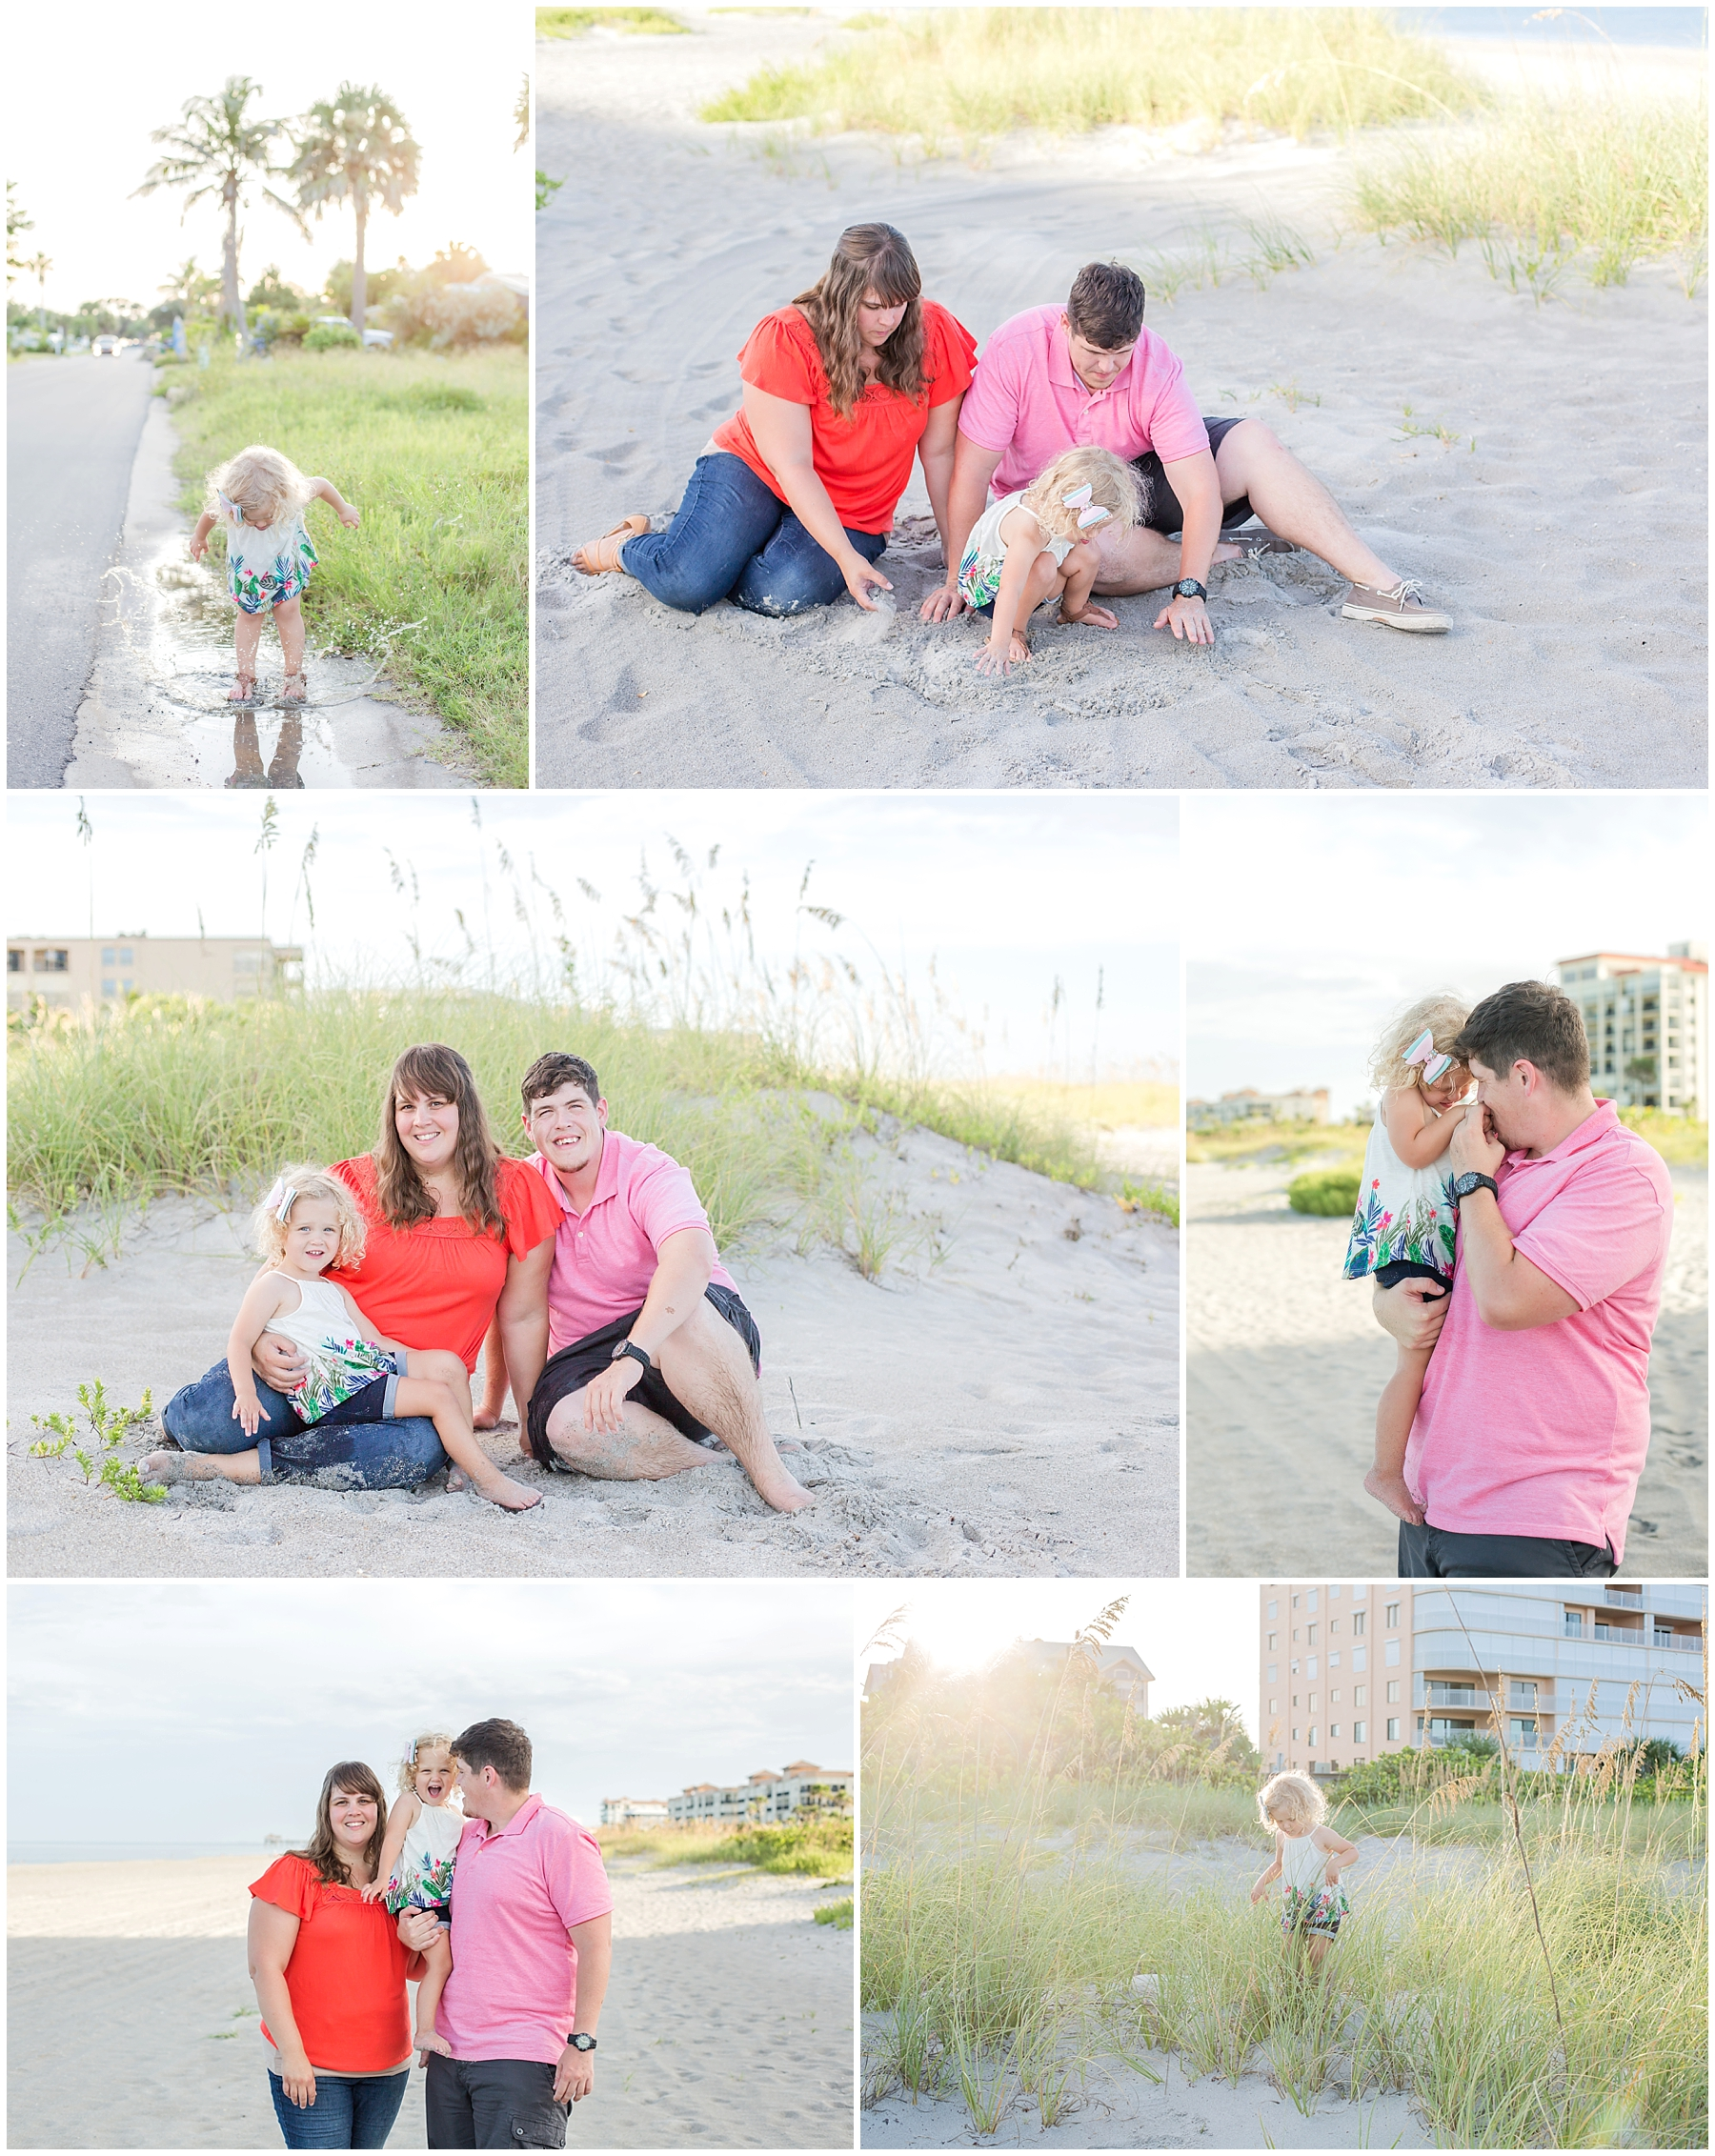 I loved photographing this sweet family at Cocoa Beach! Harper was just the sweetest!